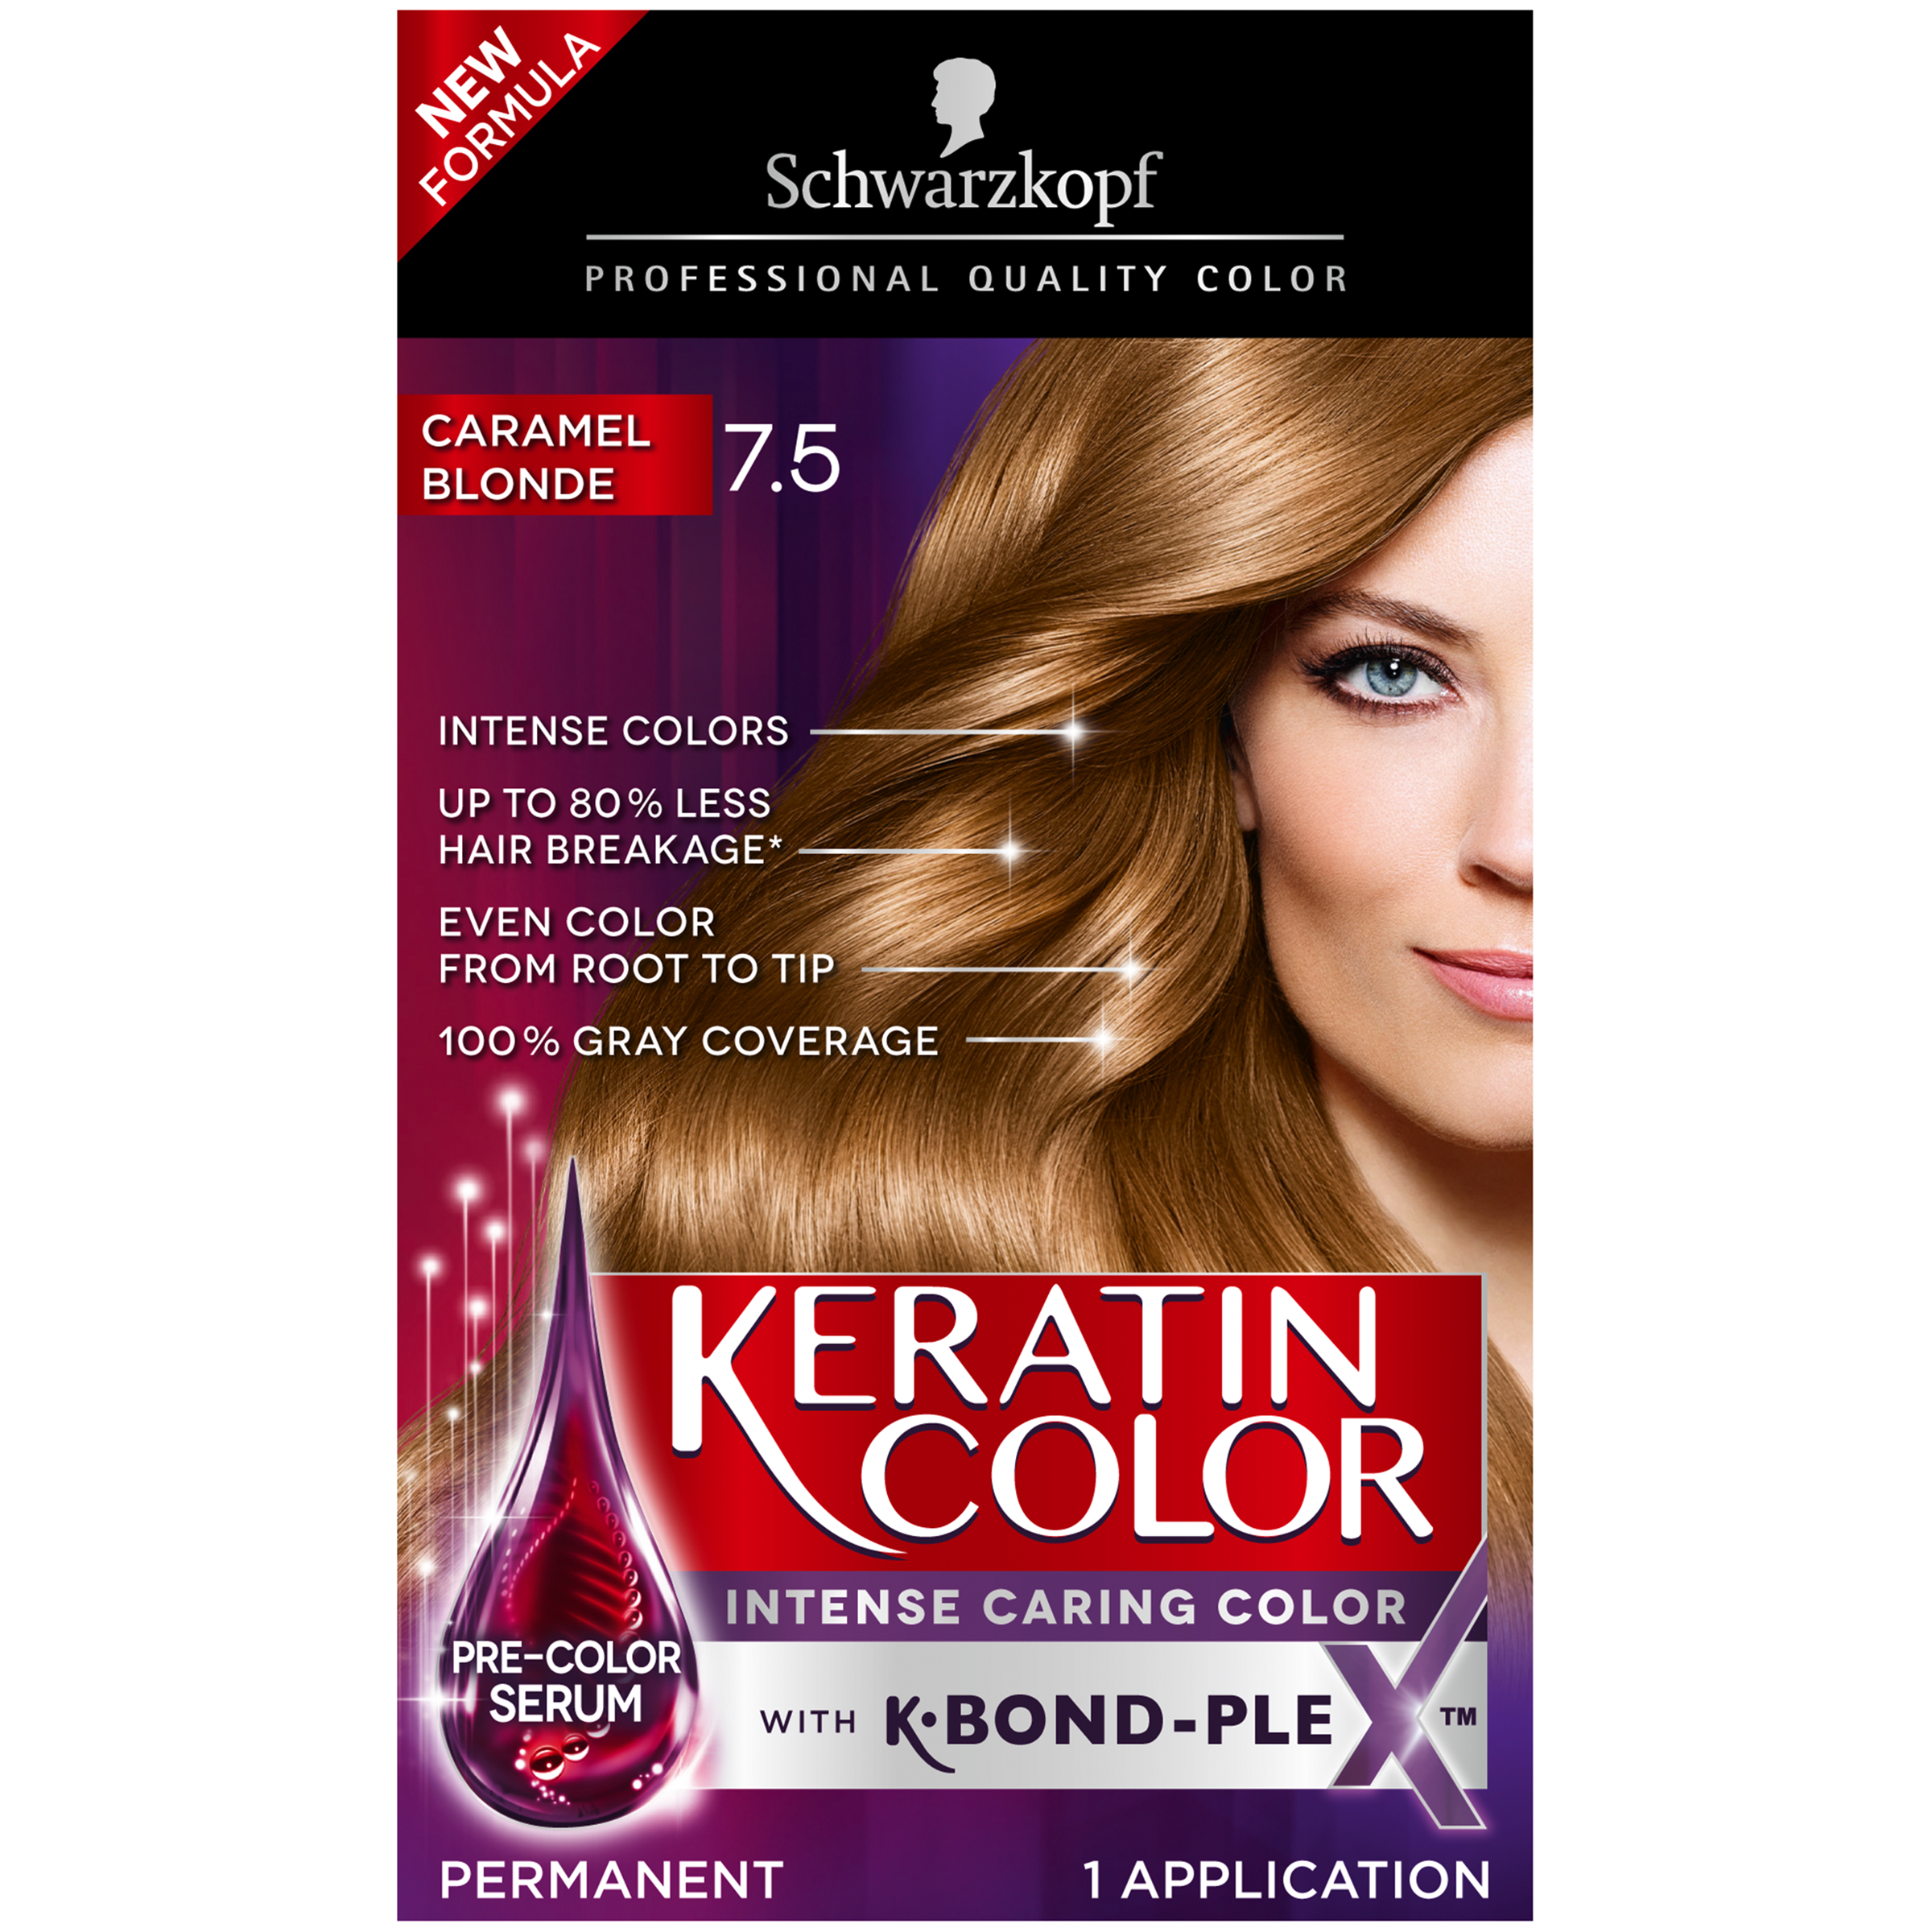 Schwarzkopf Keratin Color Permanent Hair Color Cream, 5.5 Cashmere Brown